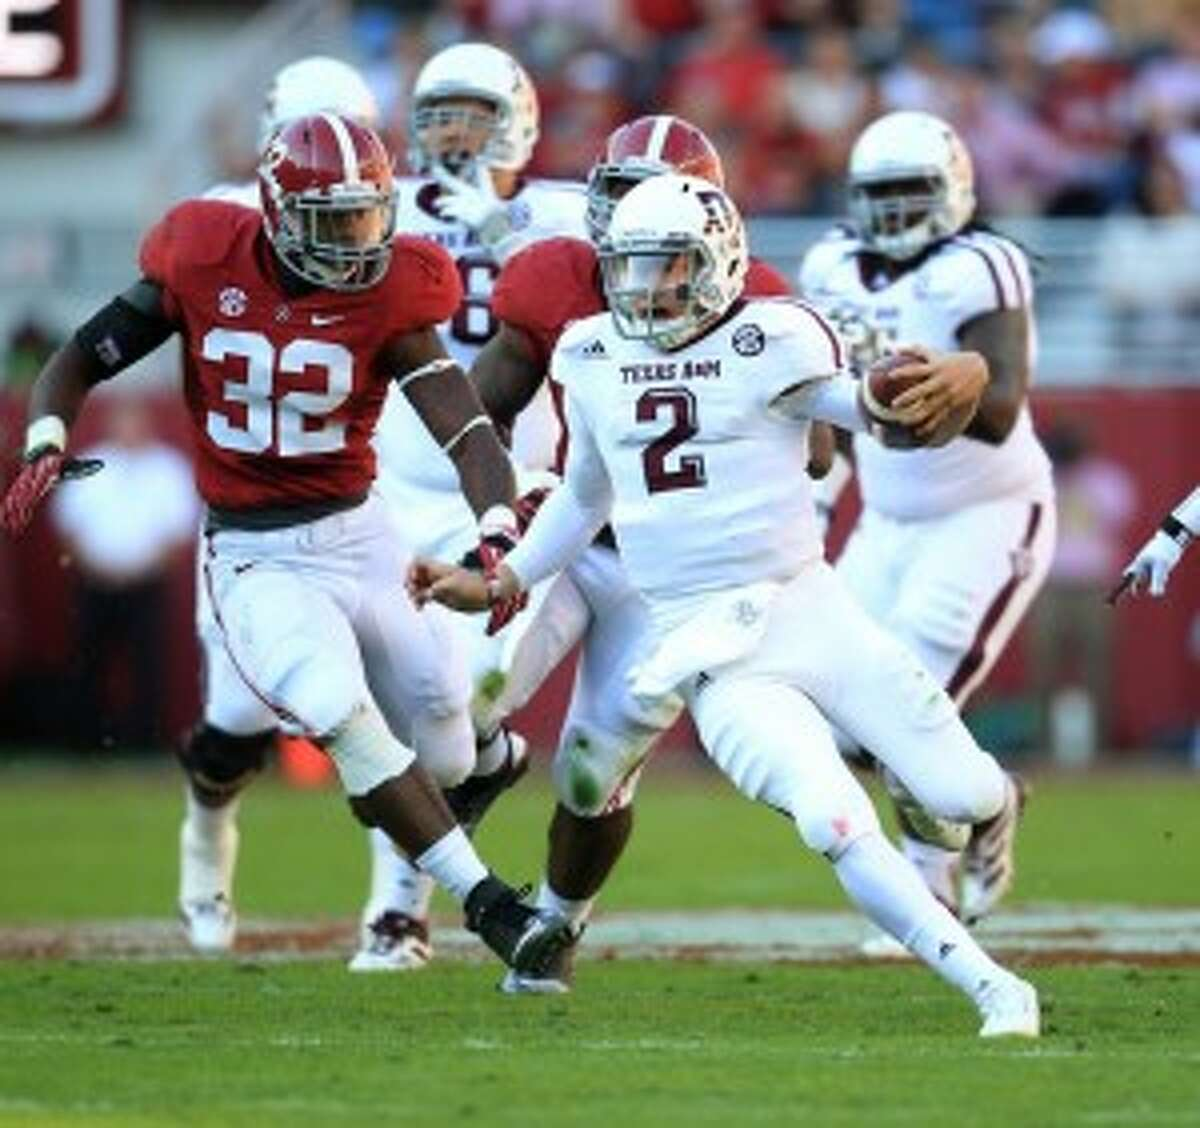 BEST WINS Nov. 10, 2012: No. 15 Texas A&M 29, No. 1 Alabama 24 Kevin Sumlin's best win came in his 10th game with the Aggies. This pushed the Aggies into the Top 10 and made Johnny Manziel the Heisman Trophy favorite